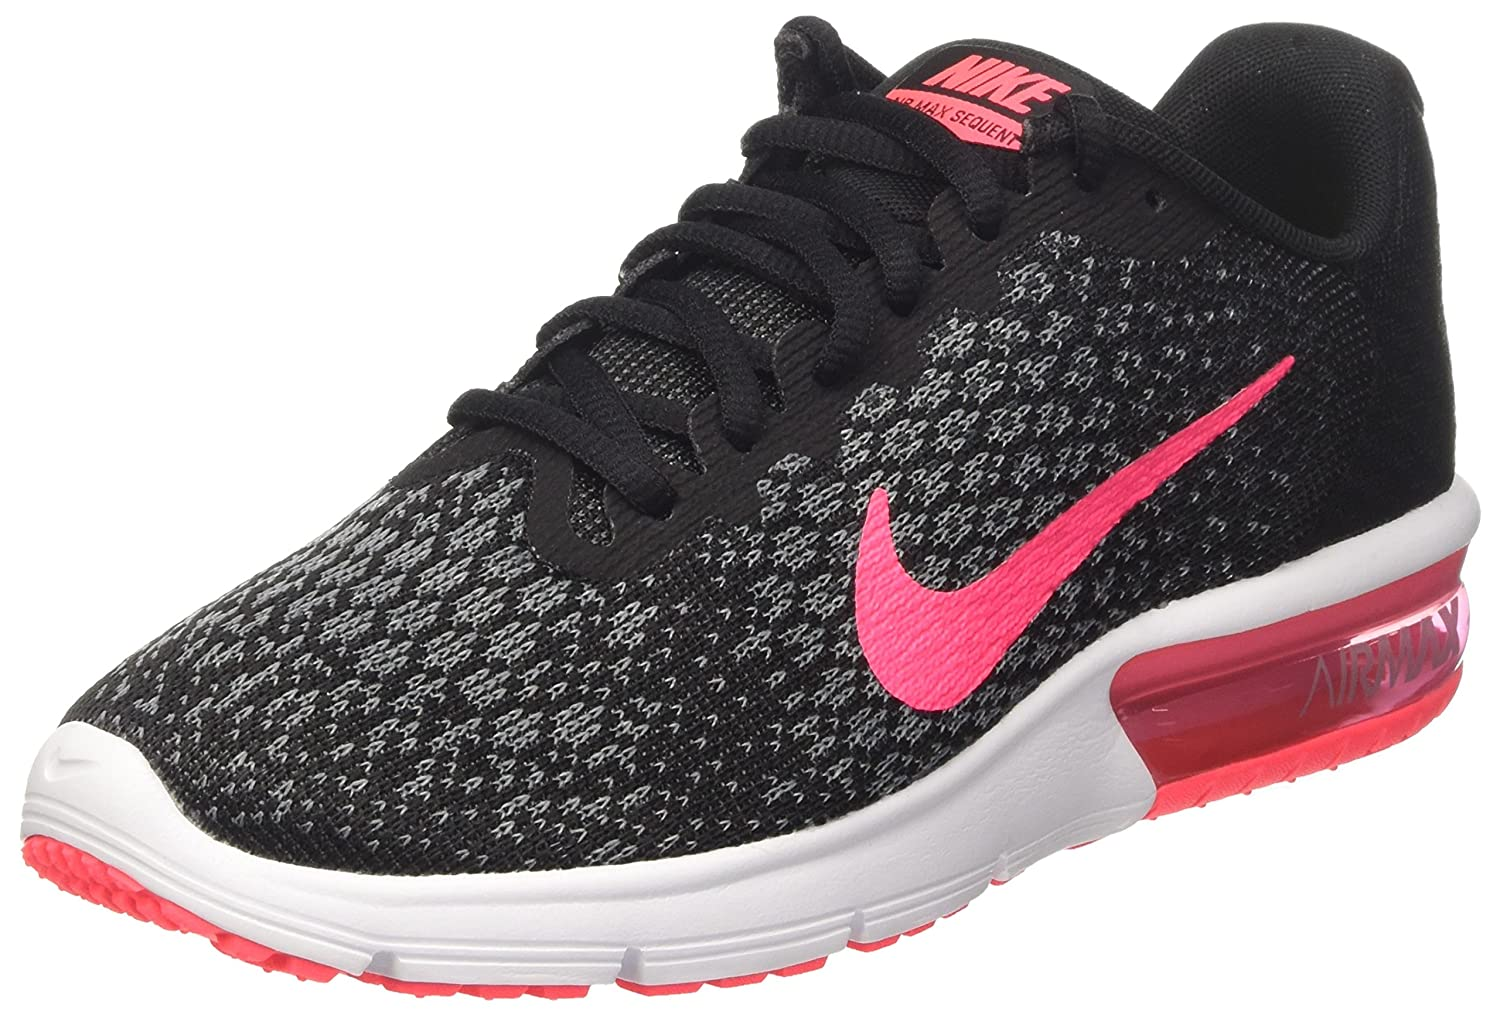 NIKE Men's Air Max Sequent 2 Running Shoe B01K2LVF50 7 B(M) US|Black/Racer Pink/Anthracite/Cool Grey